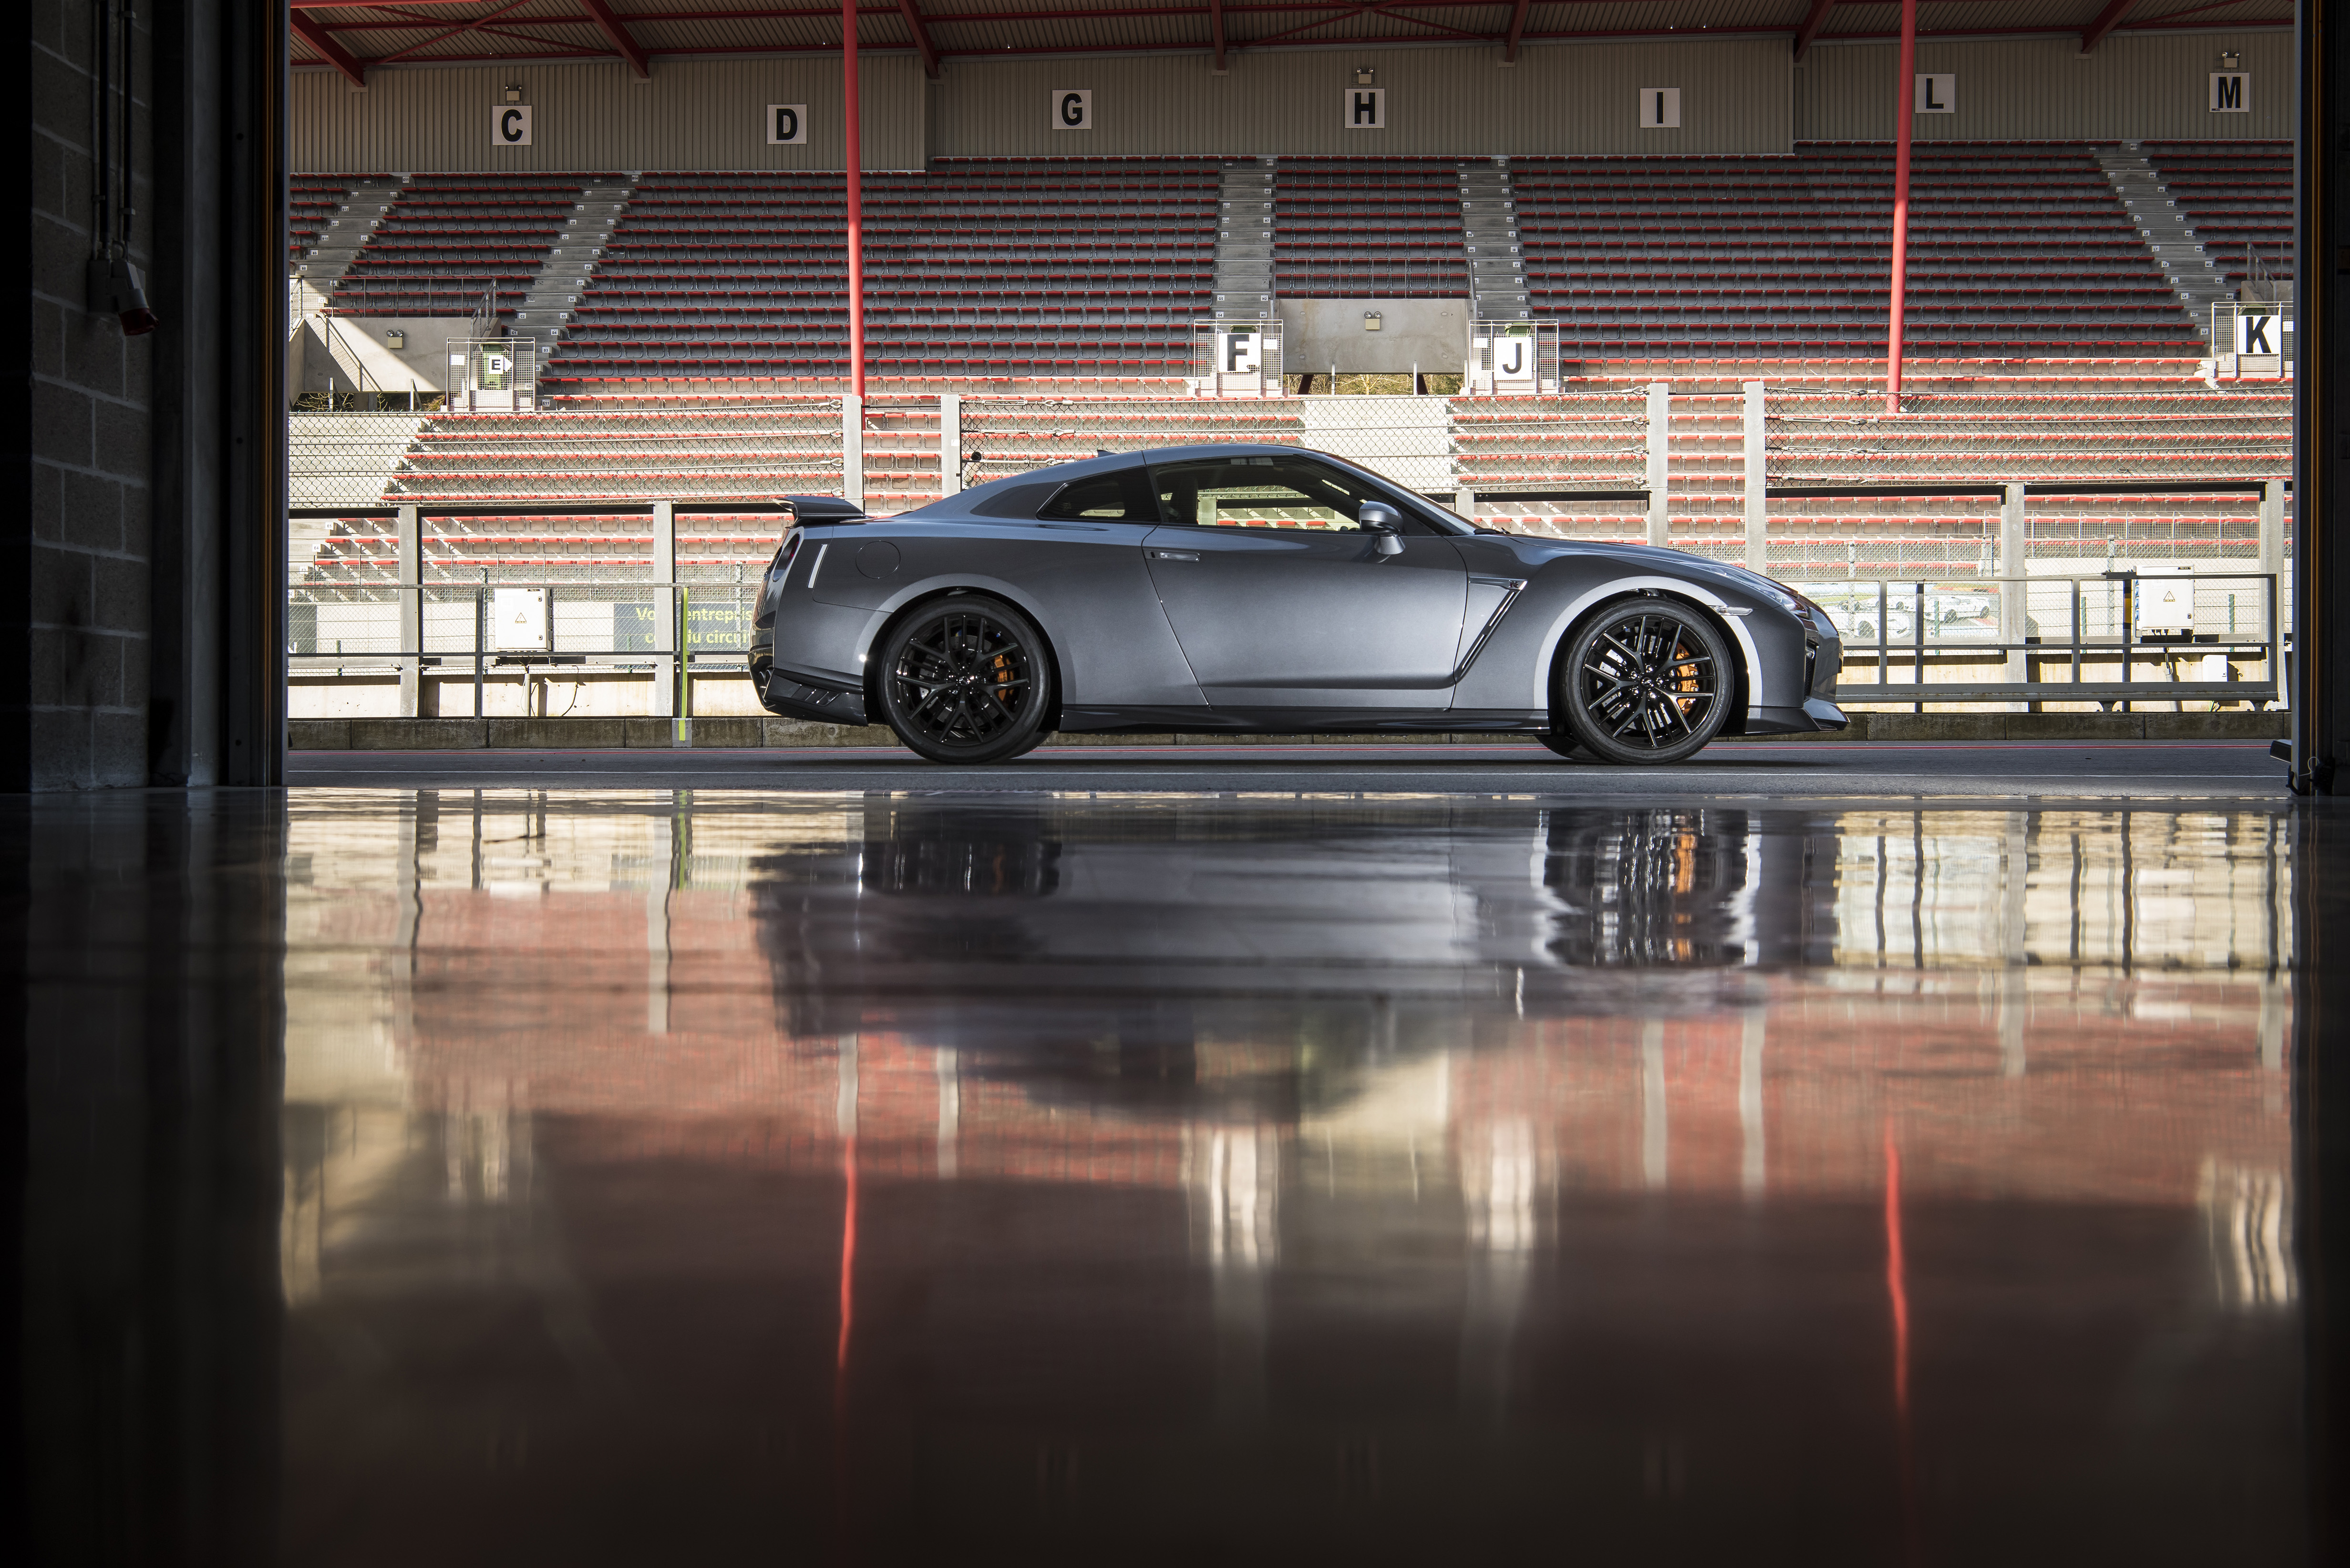 The new GT-R boasts a thoroughly refreshed exterior look that adds a high sense of style to what is already considered one of the most distinctive-looking sports cars in the marketplace.